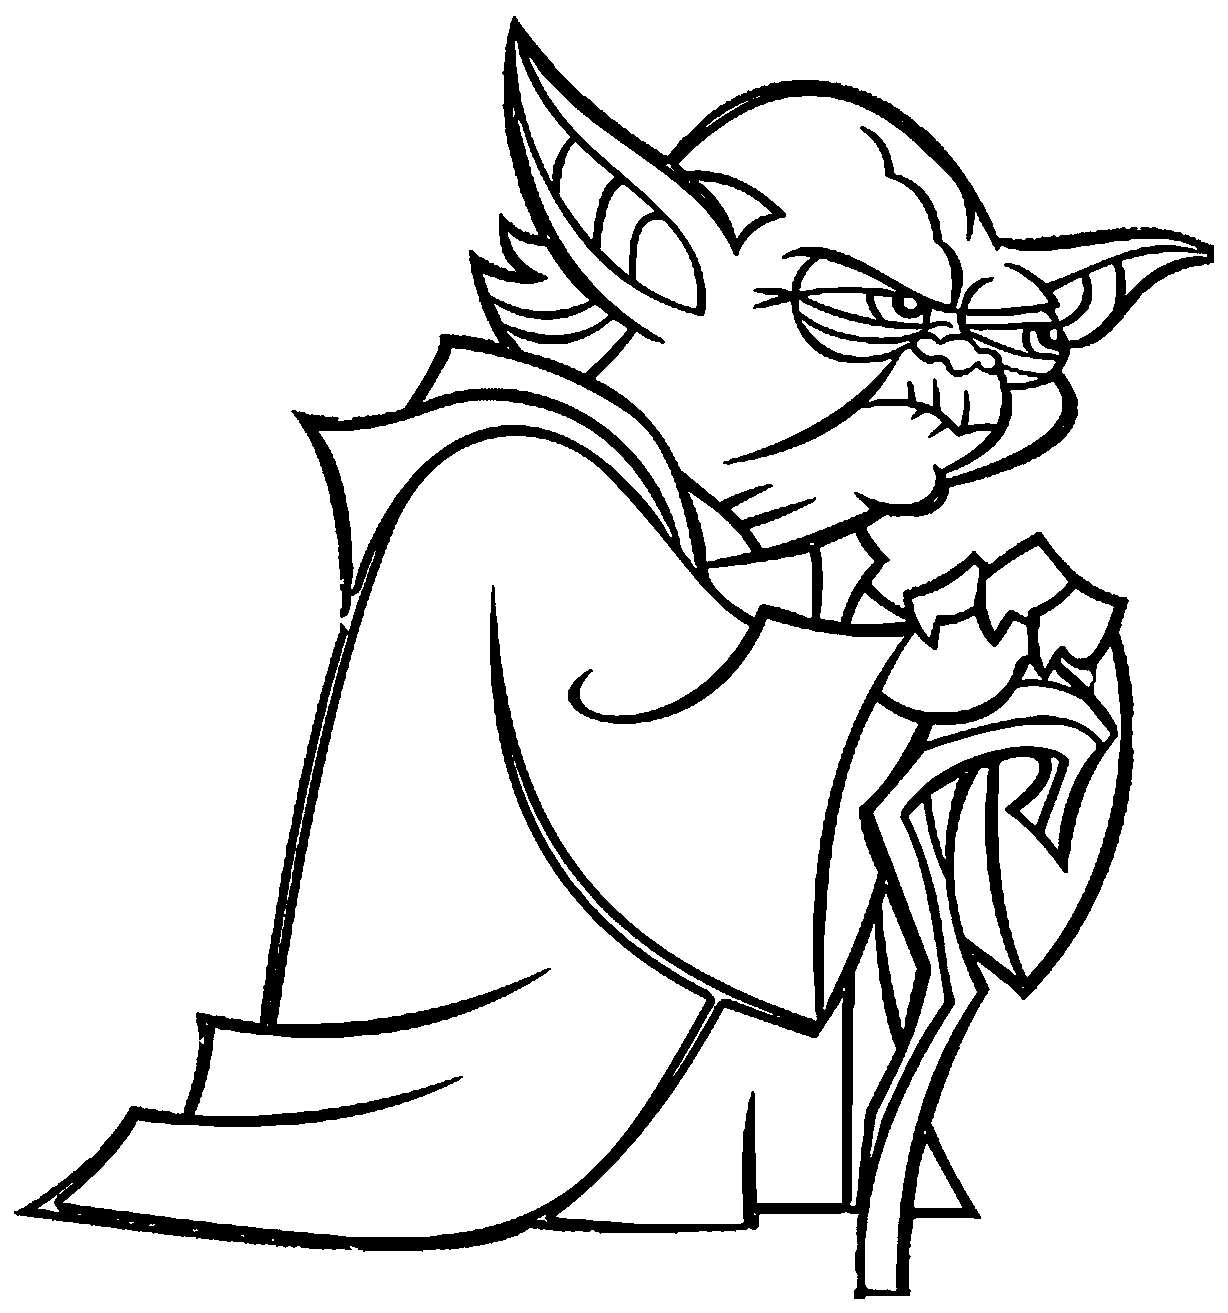 star wars coloring images star wars to print star wars kids coloring pages wars coloring images star